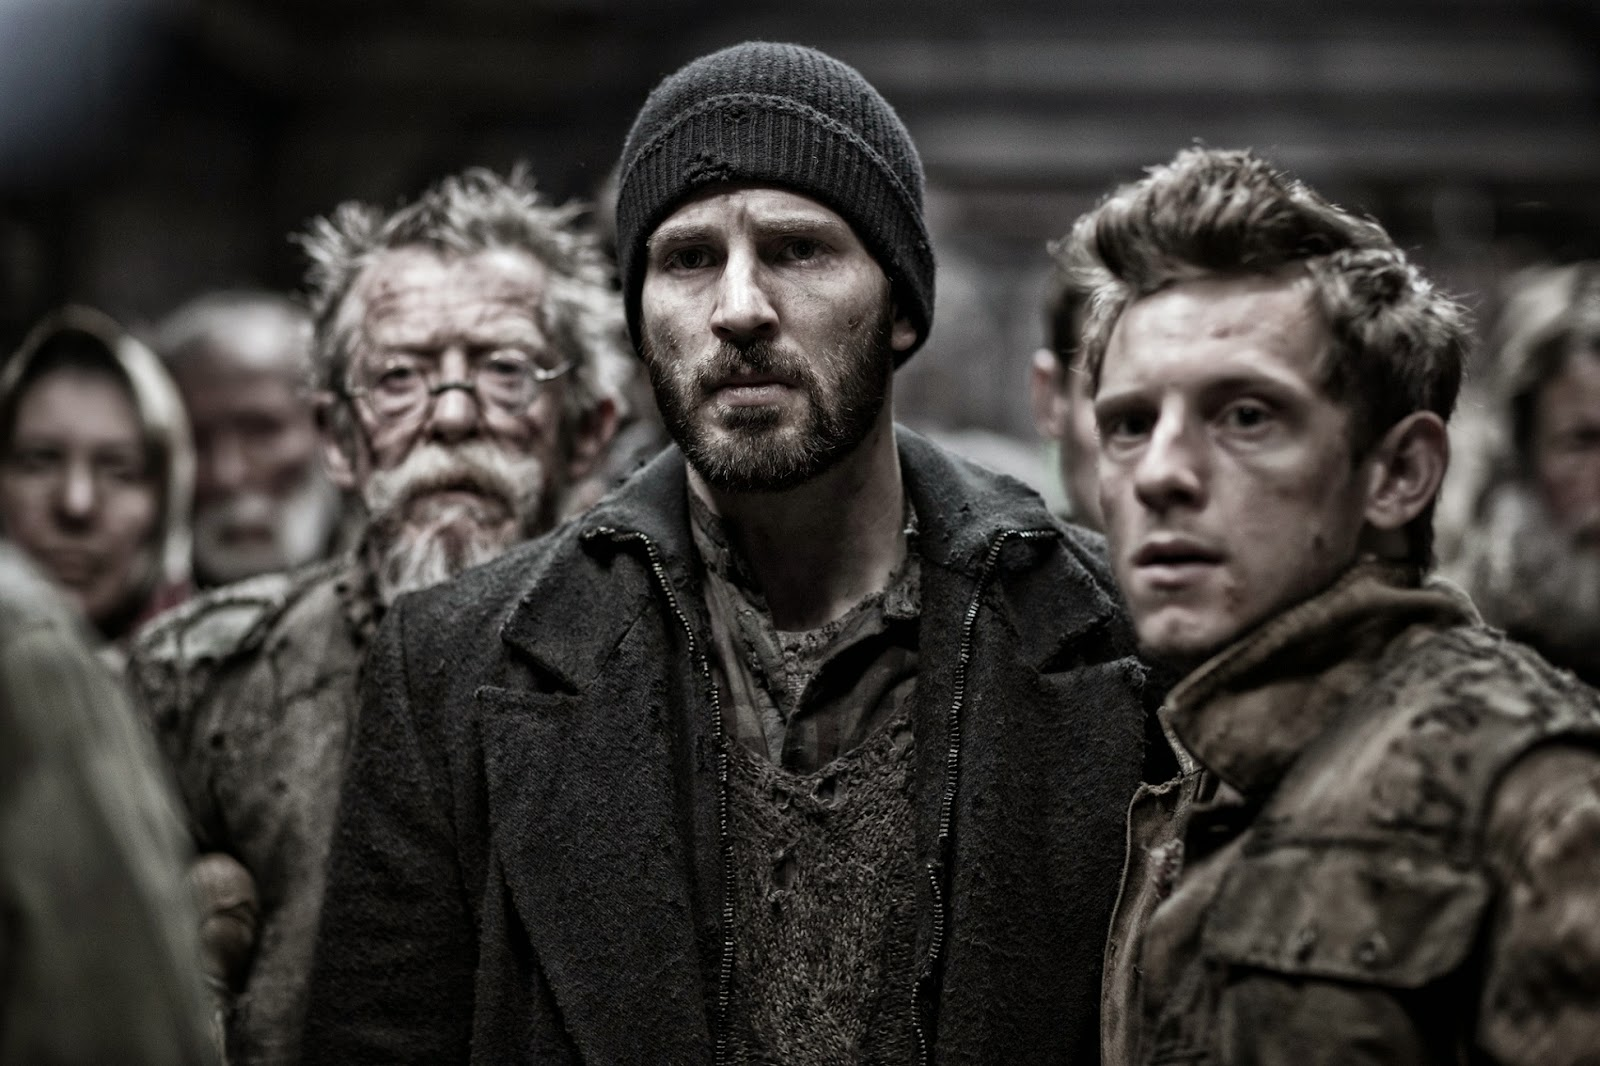 John Hurt, Chris Evans and Jamie Bell plot revolution in the tail compartments in Snowpiercer (2013)